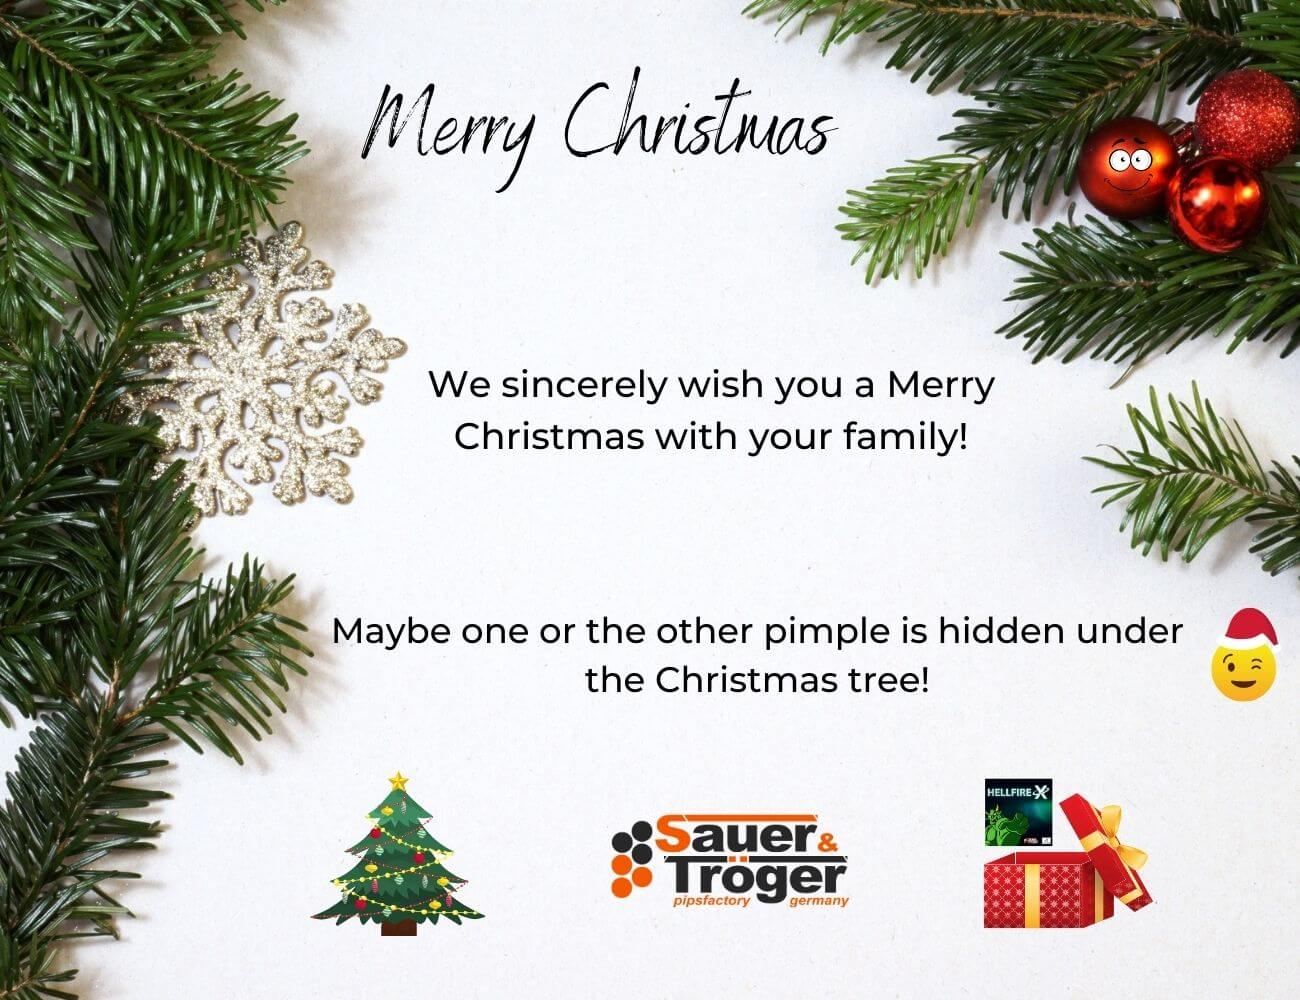 Merry Christmas from Sauer & Tröger table tennis pimples expert